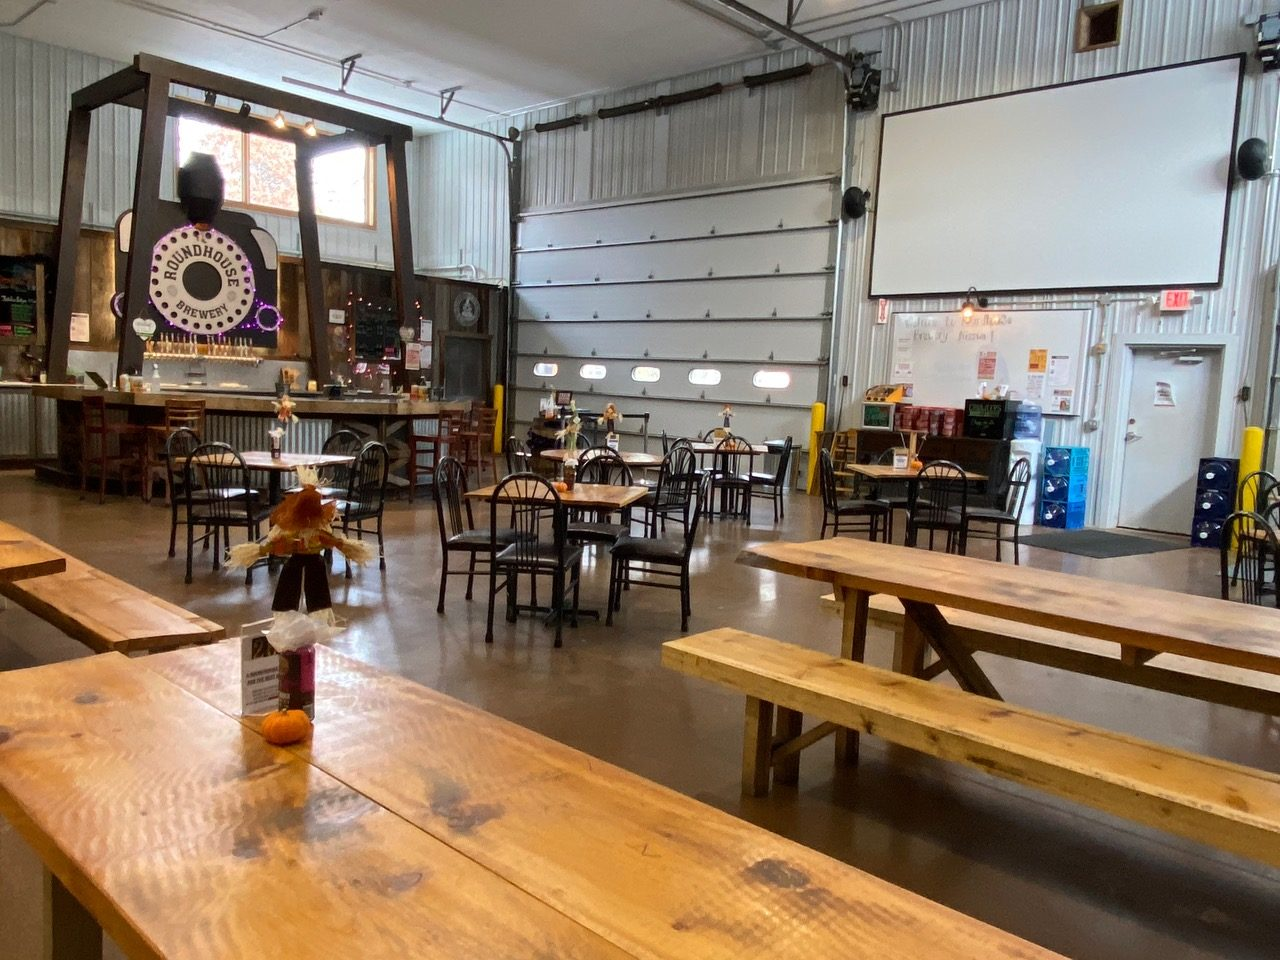 The interior of taproom at Roundhouse Brewery in Nisswa, Minnesota • Photo via Roundhouse Brewery